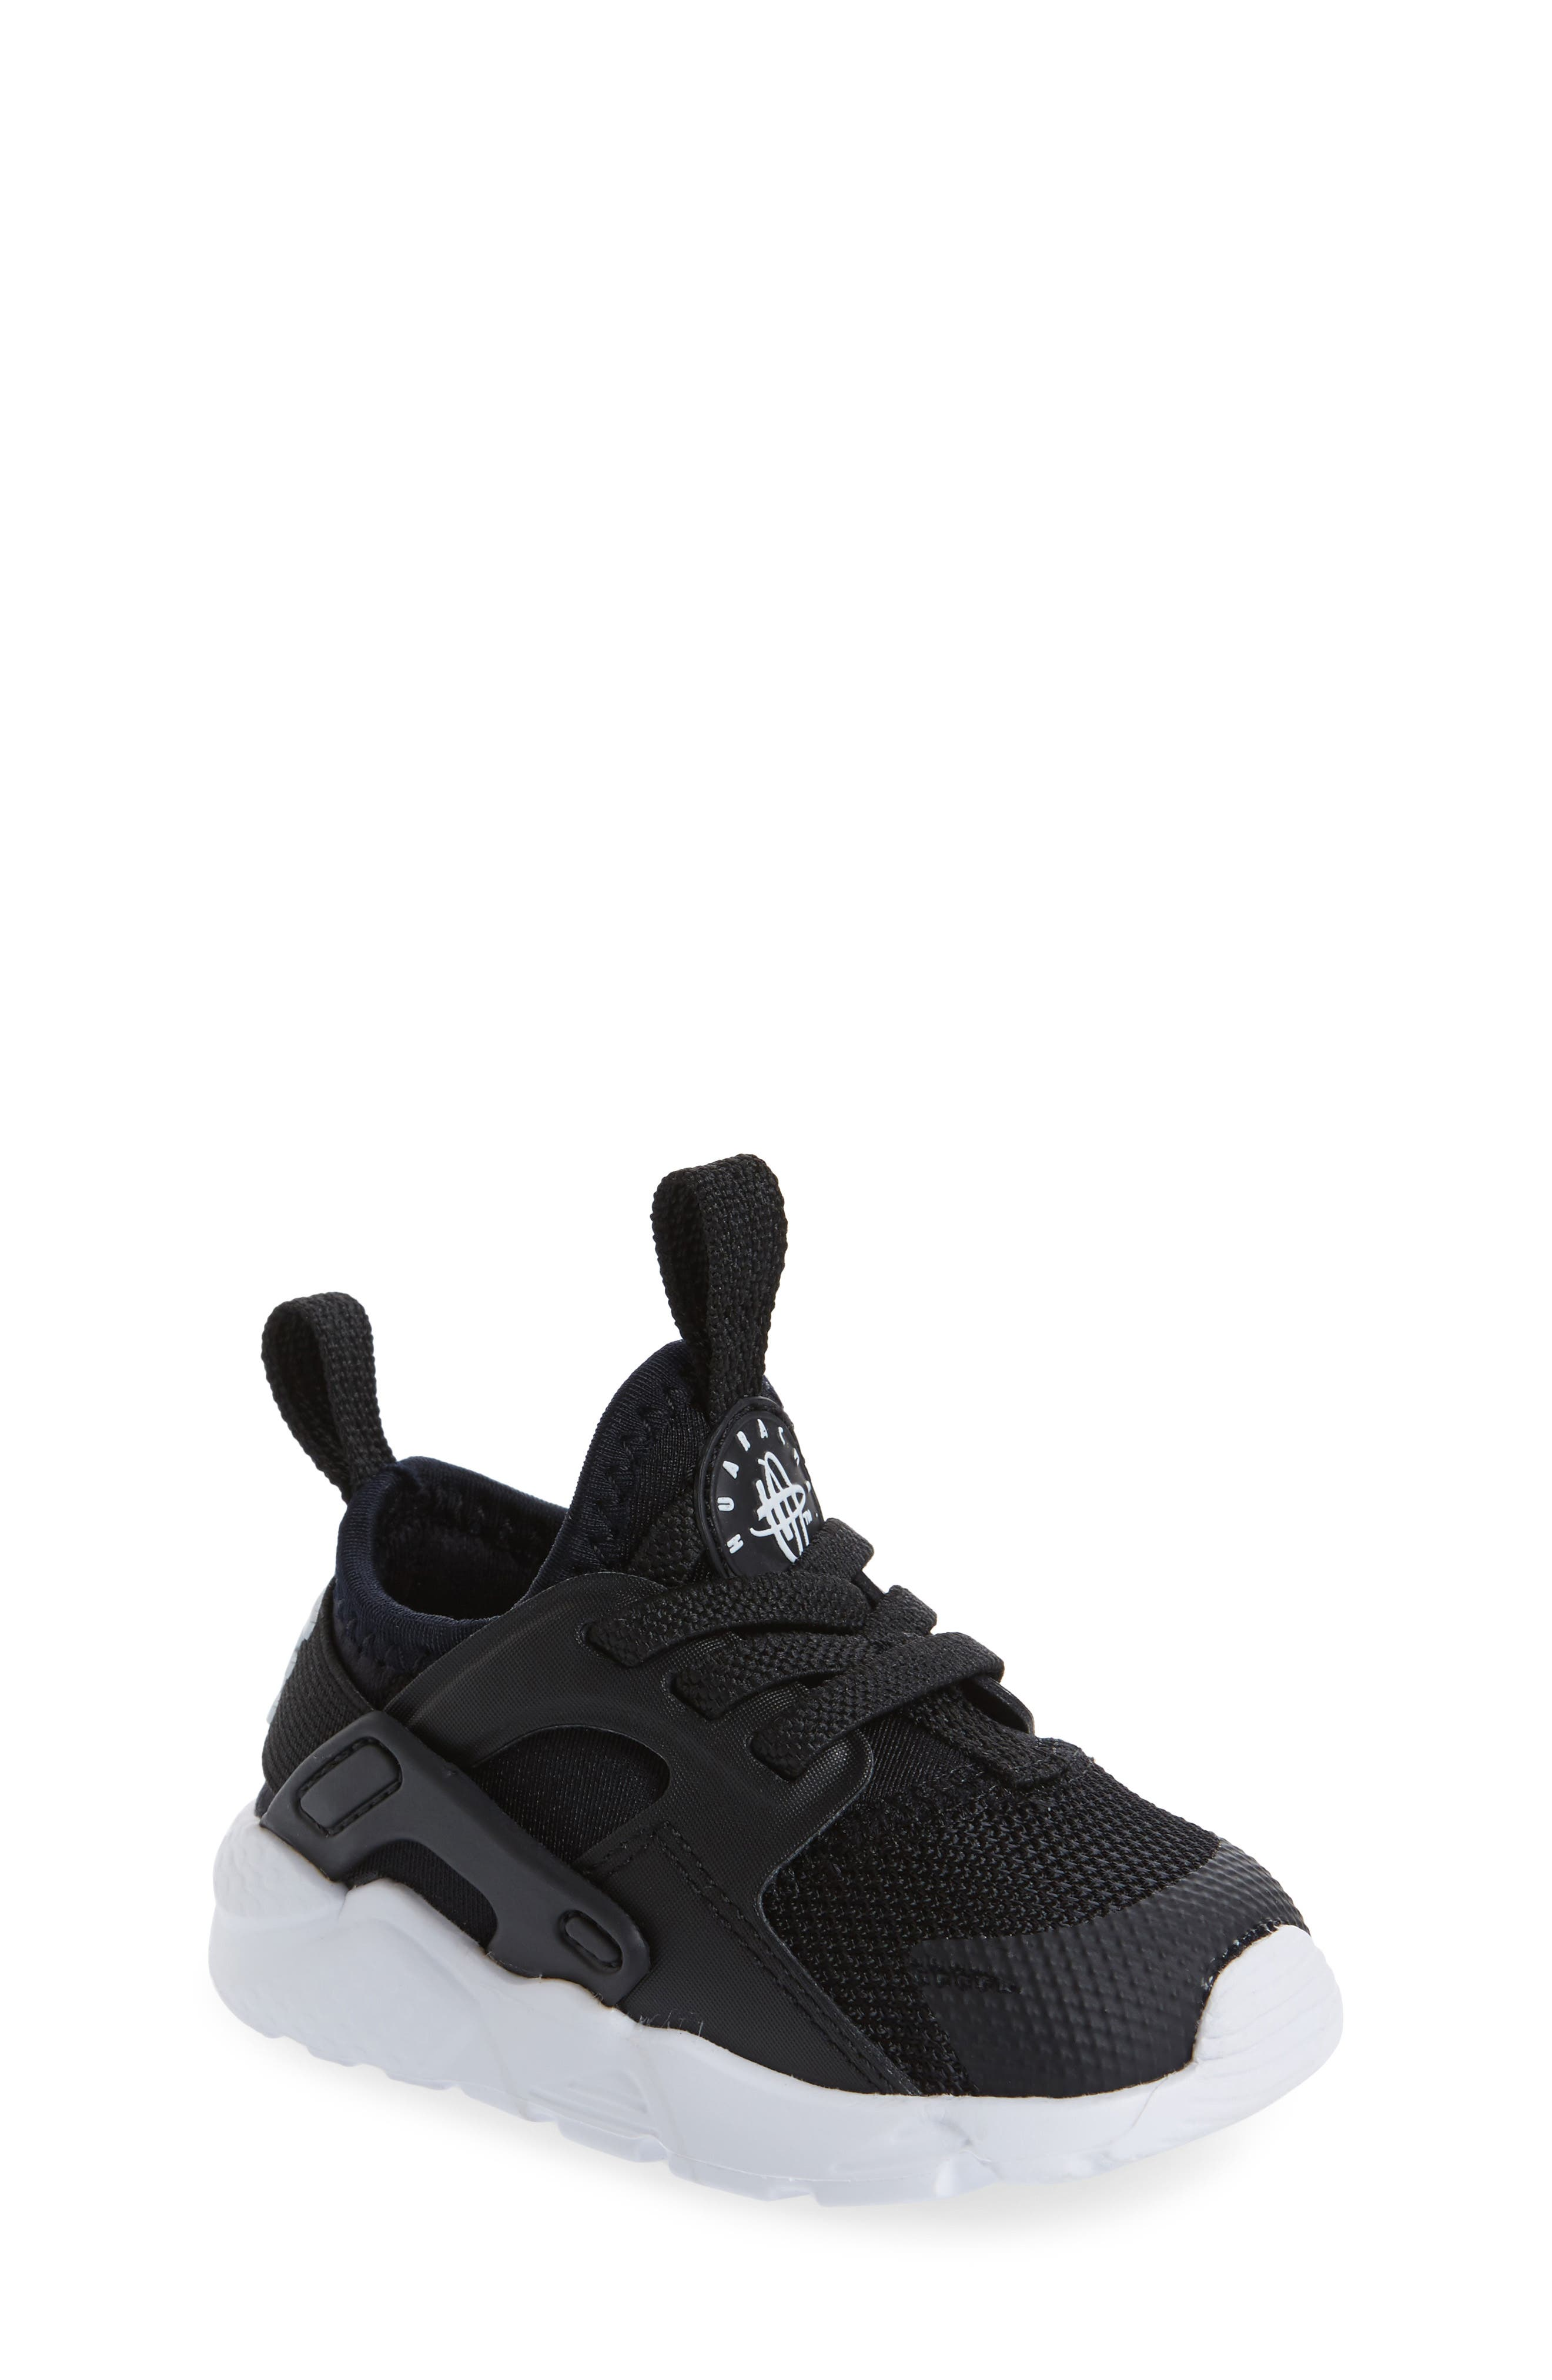 Main Image - Nike Air Huarache Run Ultra Sneaker (Baby, Walker, Toddler &